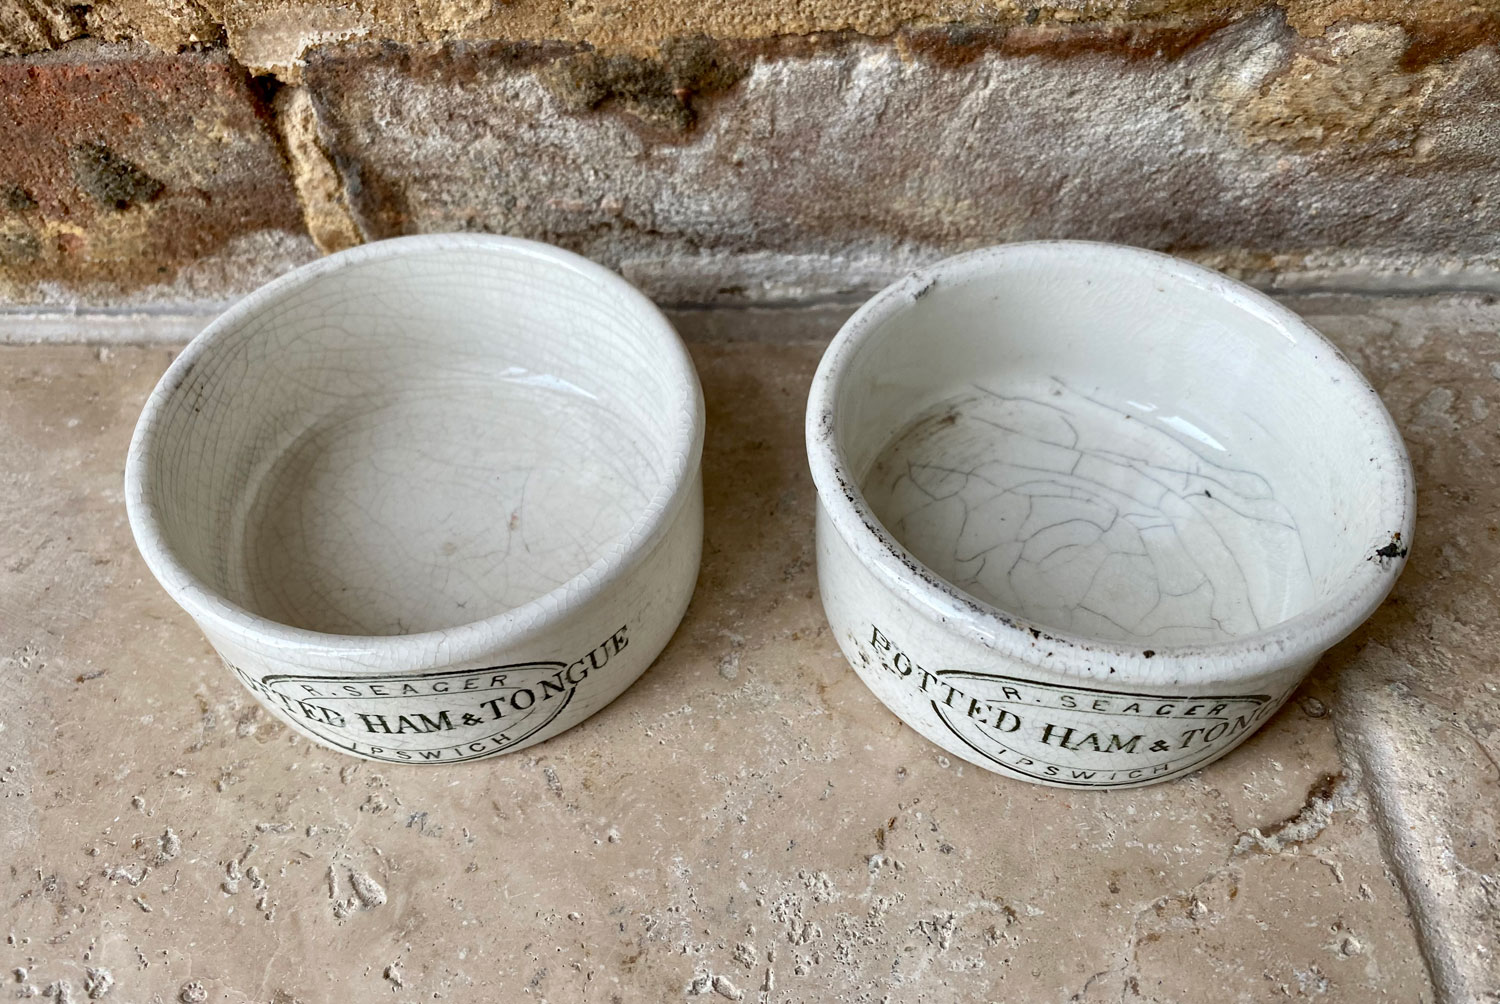 antique rare victorian white ironstone english advertising pot seagers potted ham tongue ipswich green transfer print